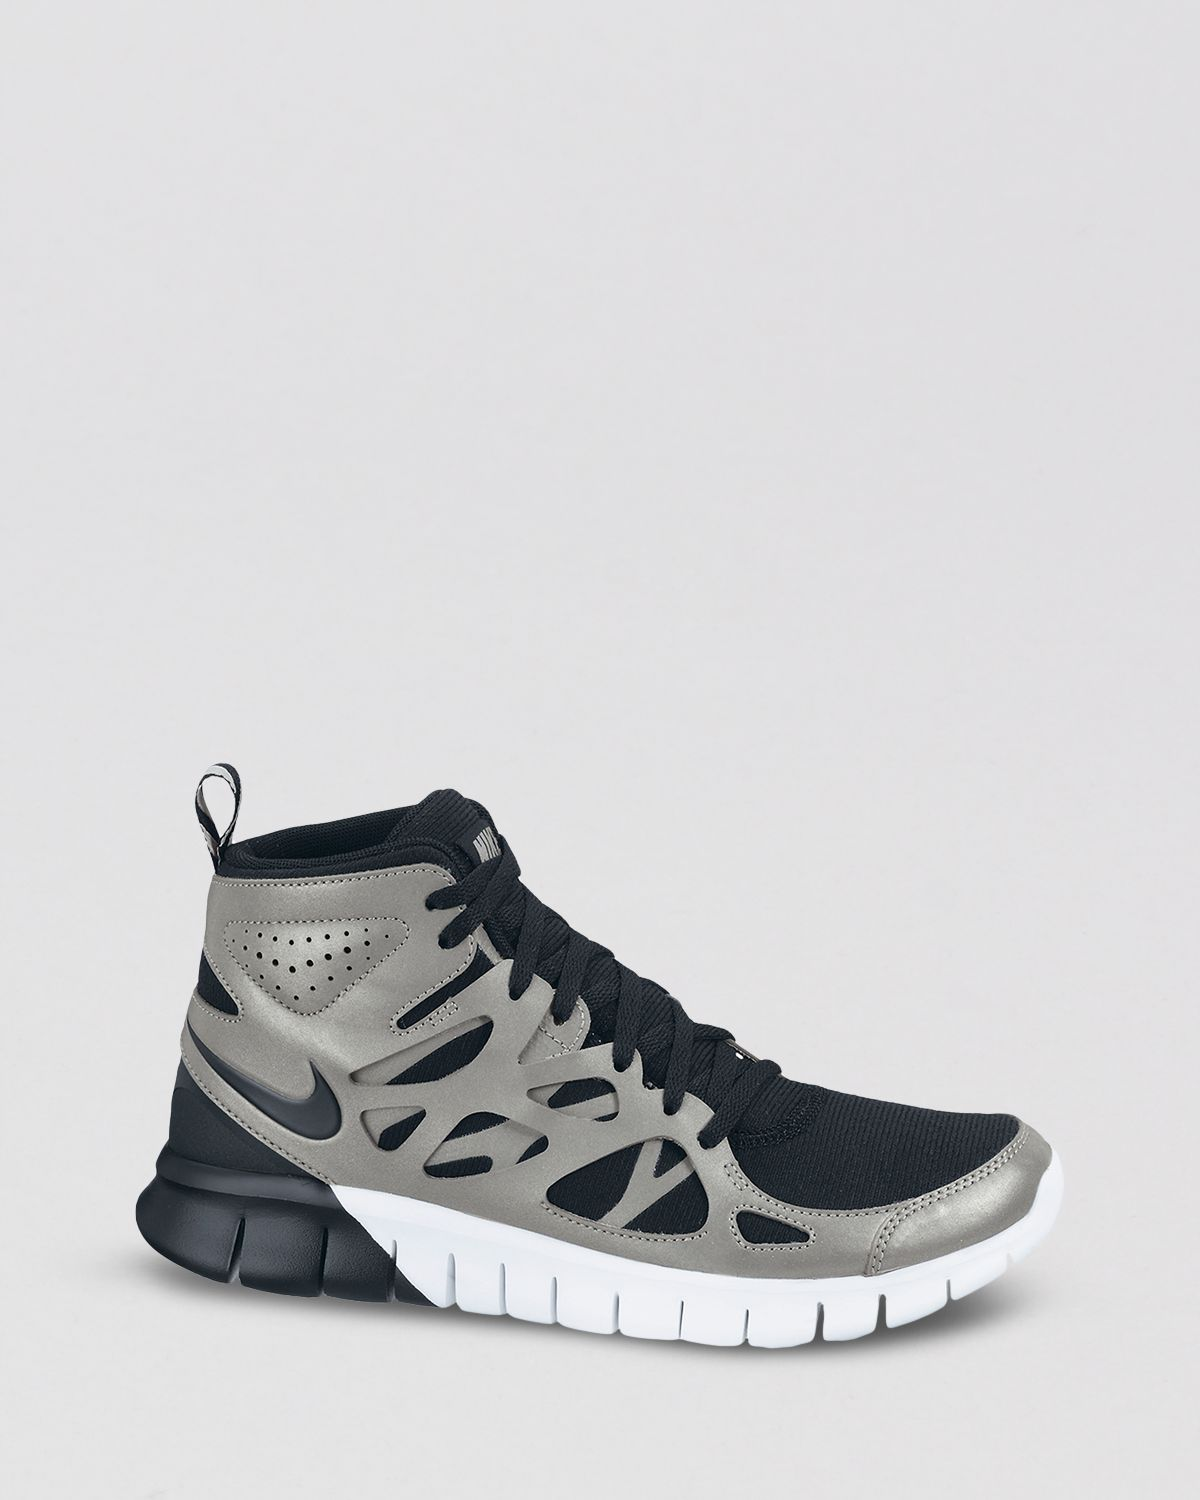 0bcab7ea6e2451 Lyst - Nike Lace Up High Top Sneakers Womens Free Run 2 Mid in Gray